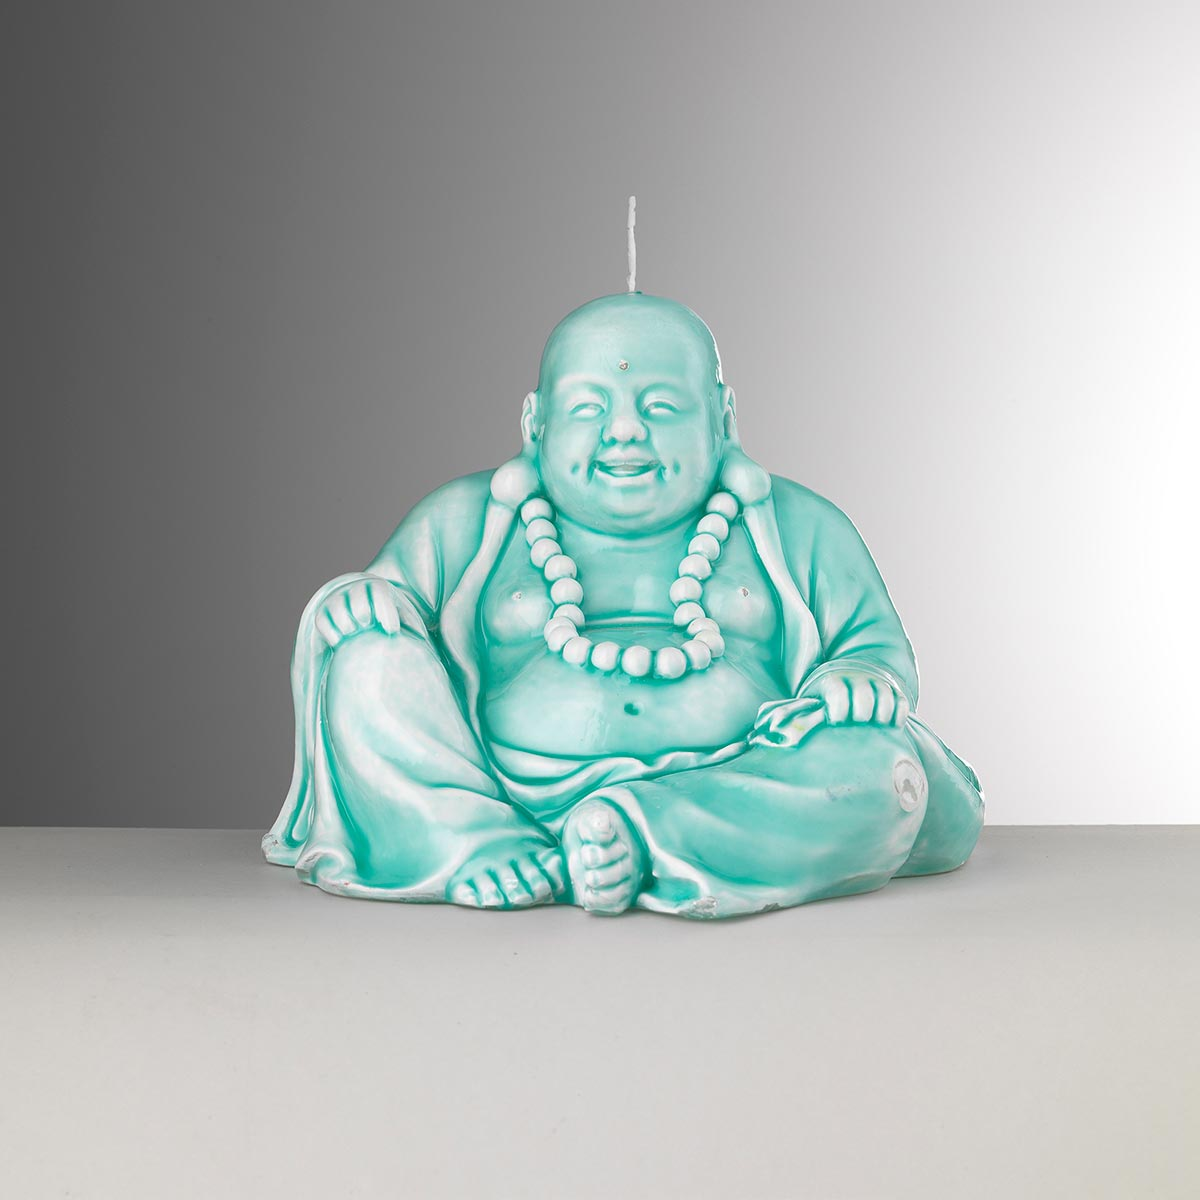 Turquoise candle<br>H: 15cm, W: 18cm<br>Buddha